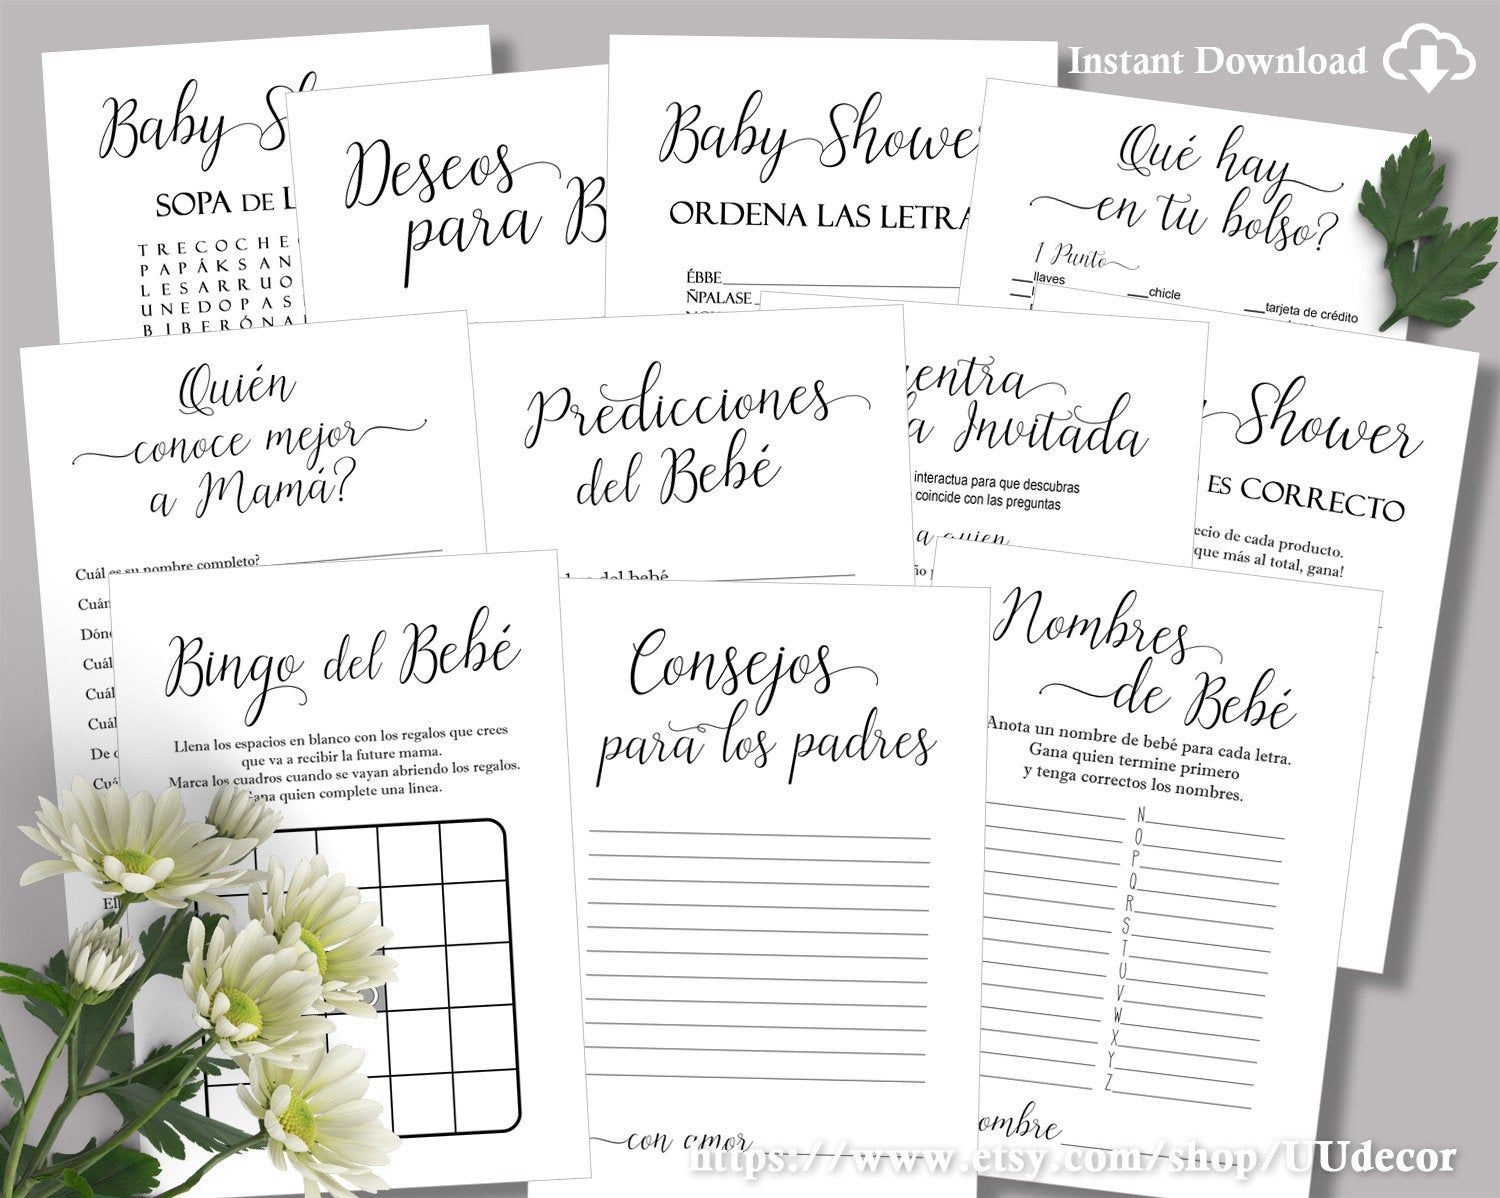 Black and White Spanish Baby Shower Games, Juegos de Baby Shower, Spanish Baby Shower Games, Juegos para Baby Shower, Instant Download